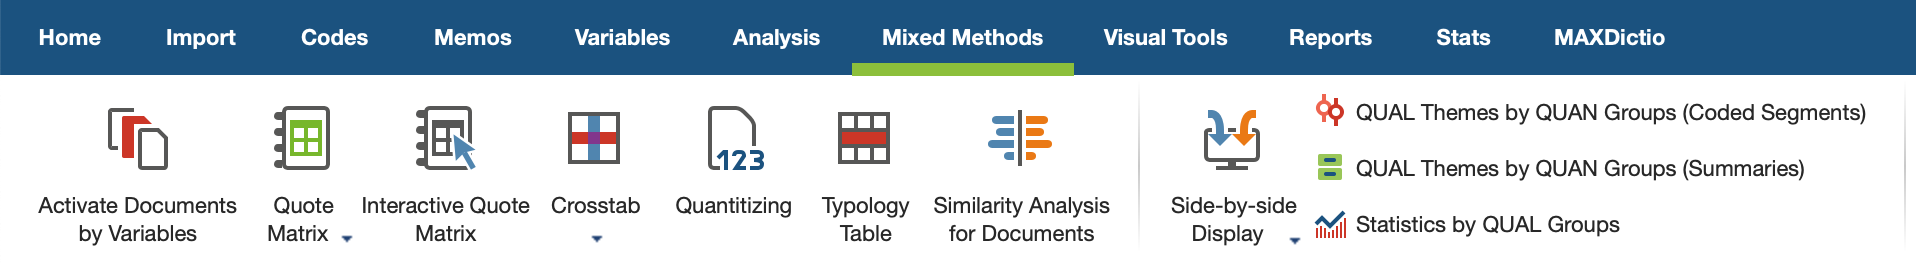 "The ""Mixed Methods"" Tab"